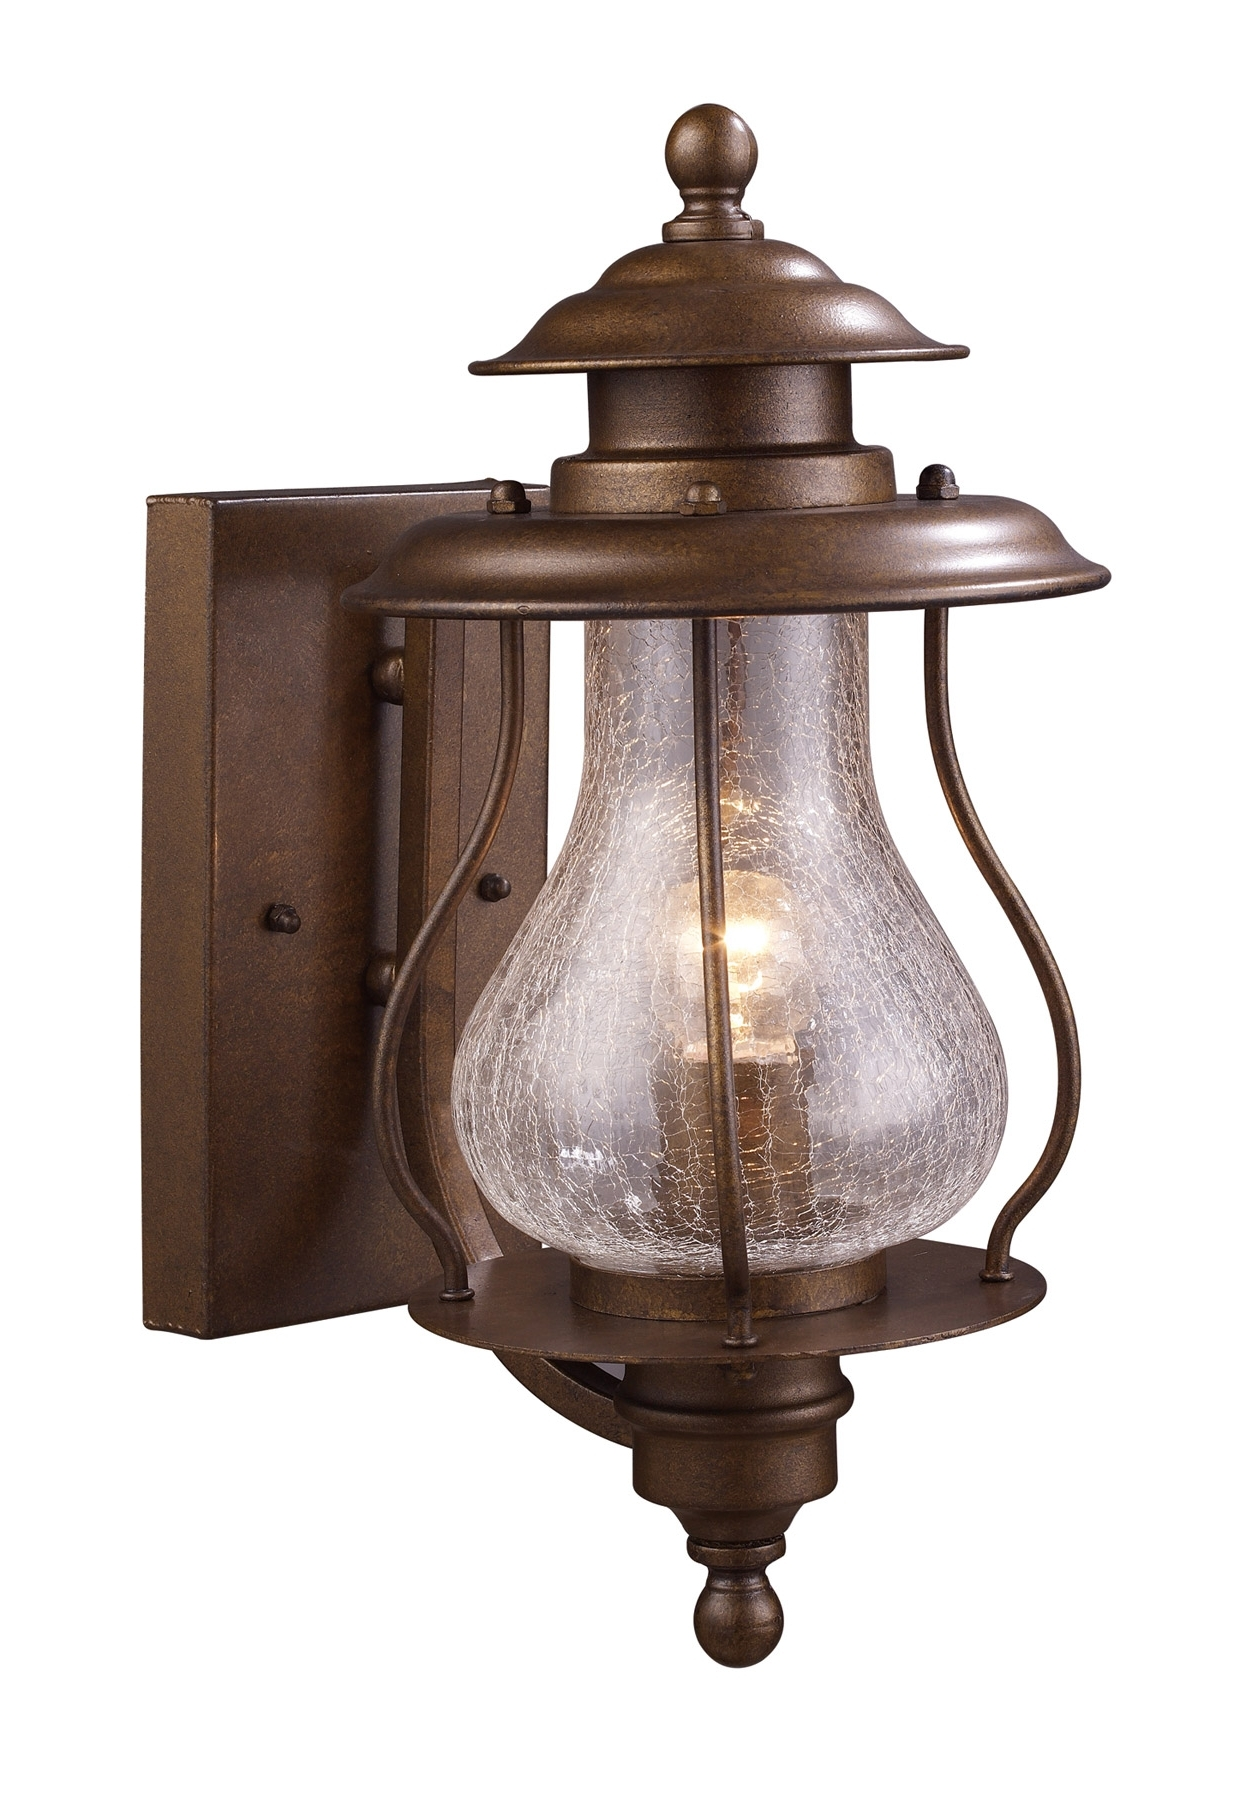 Preferred Large Antique Galvanized Outdoor Wall Mounted Sconce Lighting With Regarding Antique Outdoor Wall Lighting (View 17 of 20)